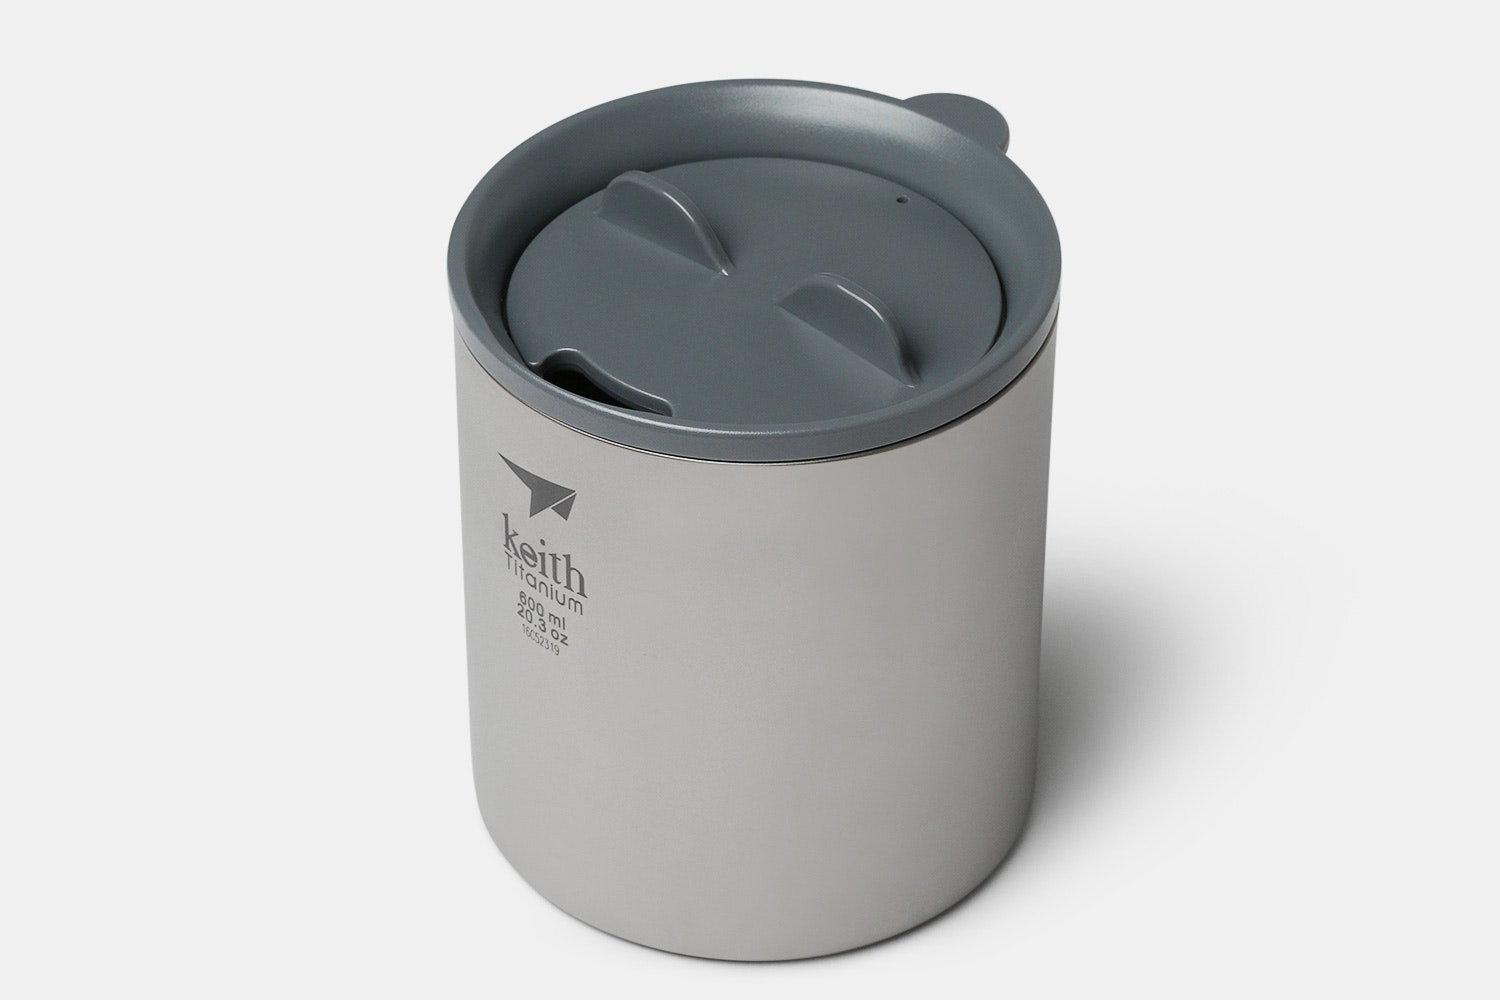 Keith Ti3306 Double-Wall Titanium Mug